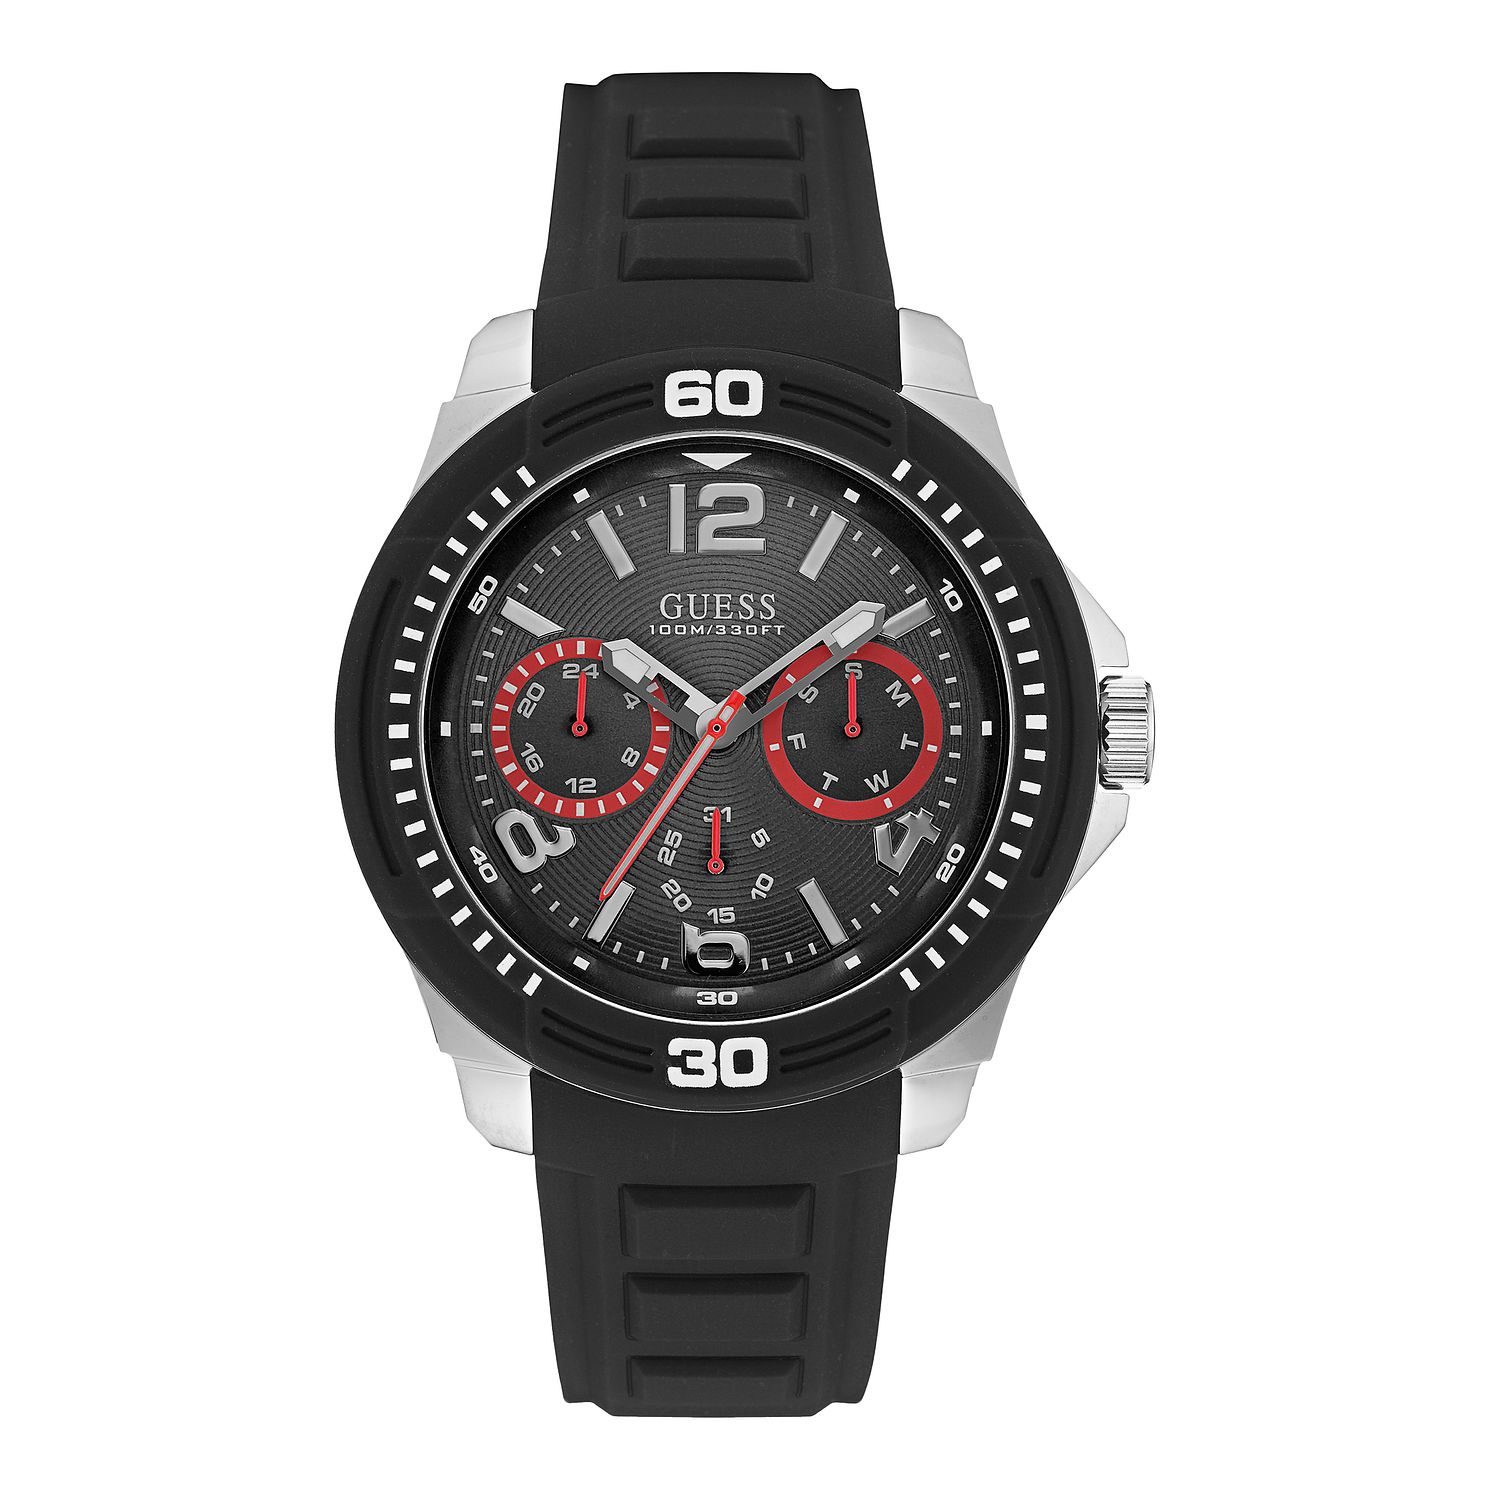 Guess Men's Black Rubber Strap Watch - Product number 3627462